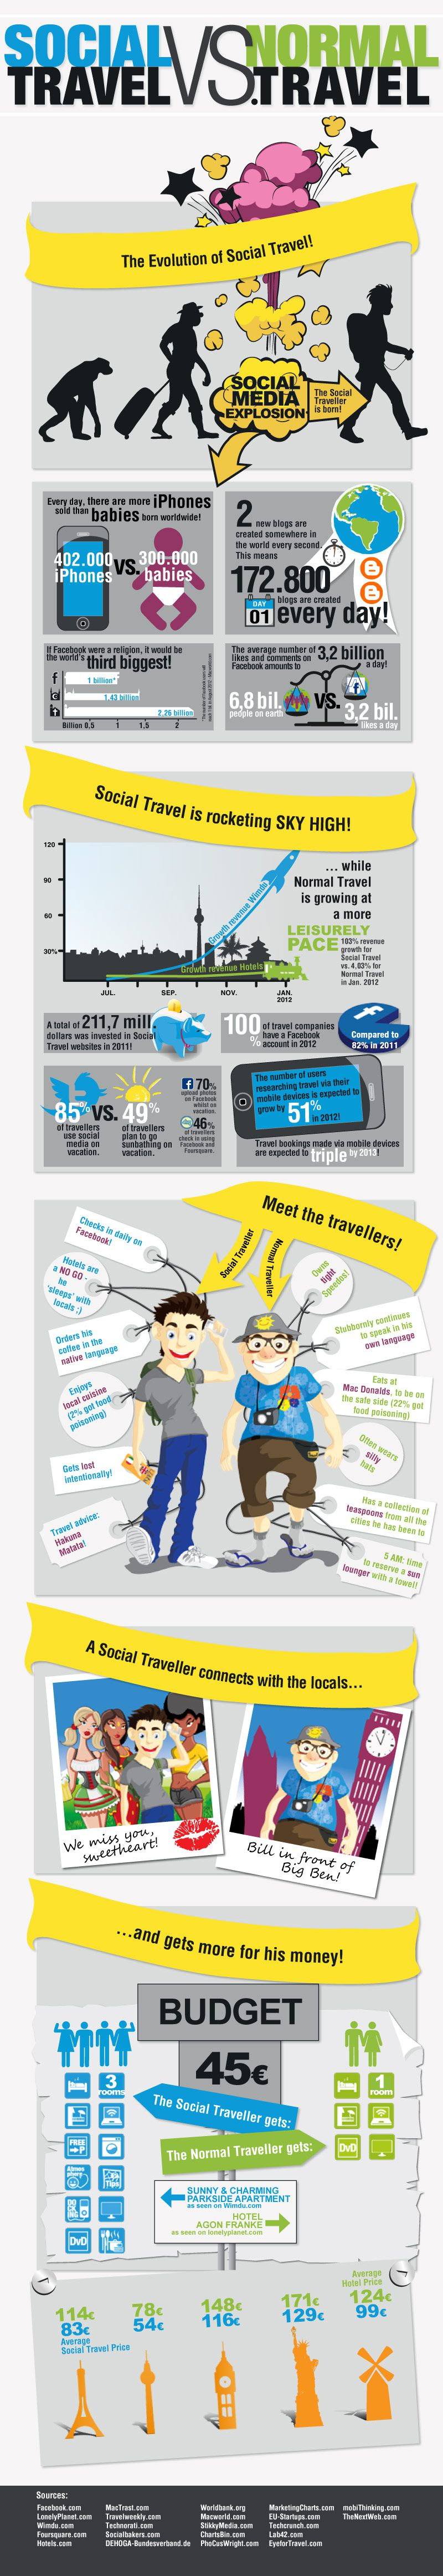 Descubre la tendencia en Social Travel!